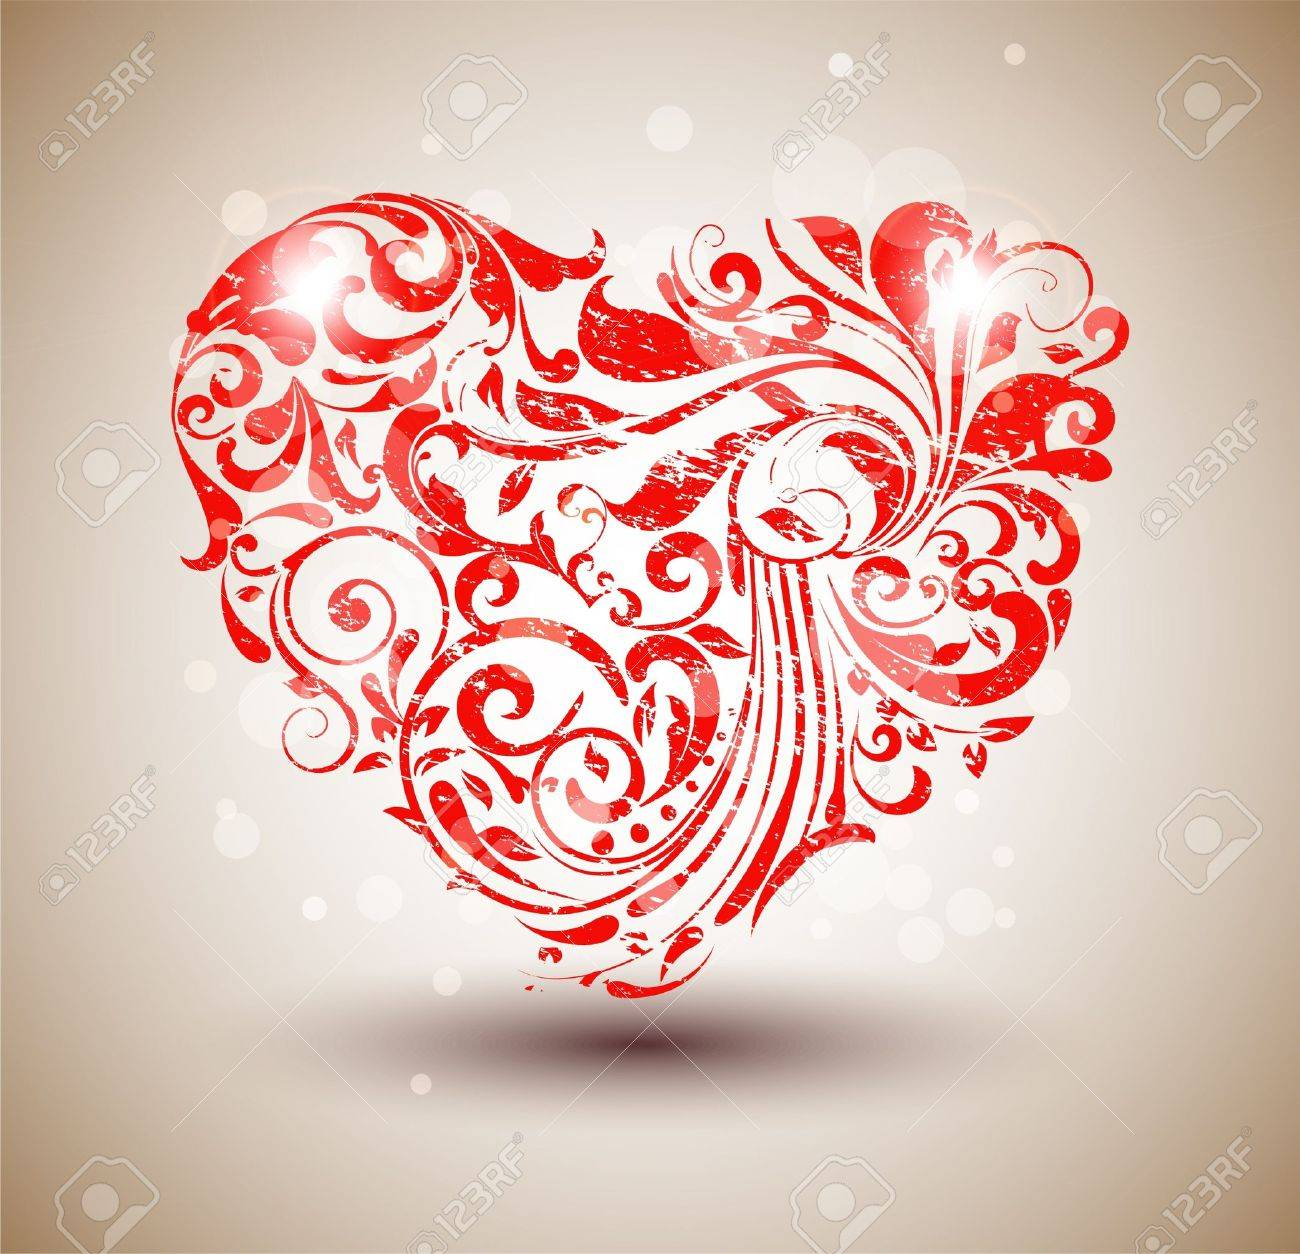 Red floral grunge heart Stock Vector - 11422589